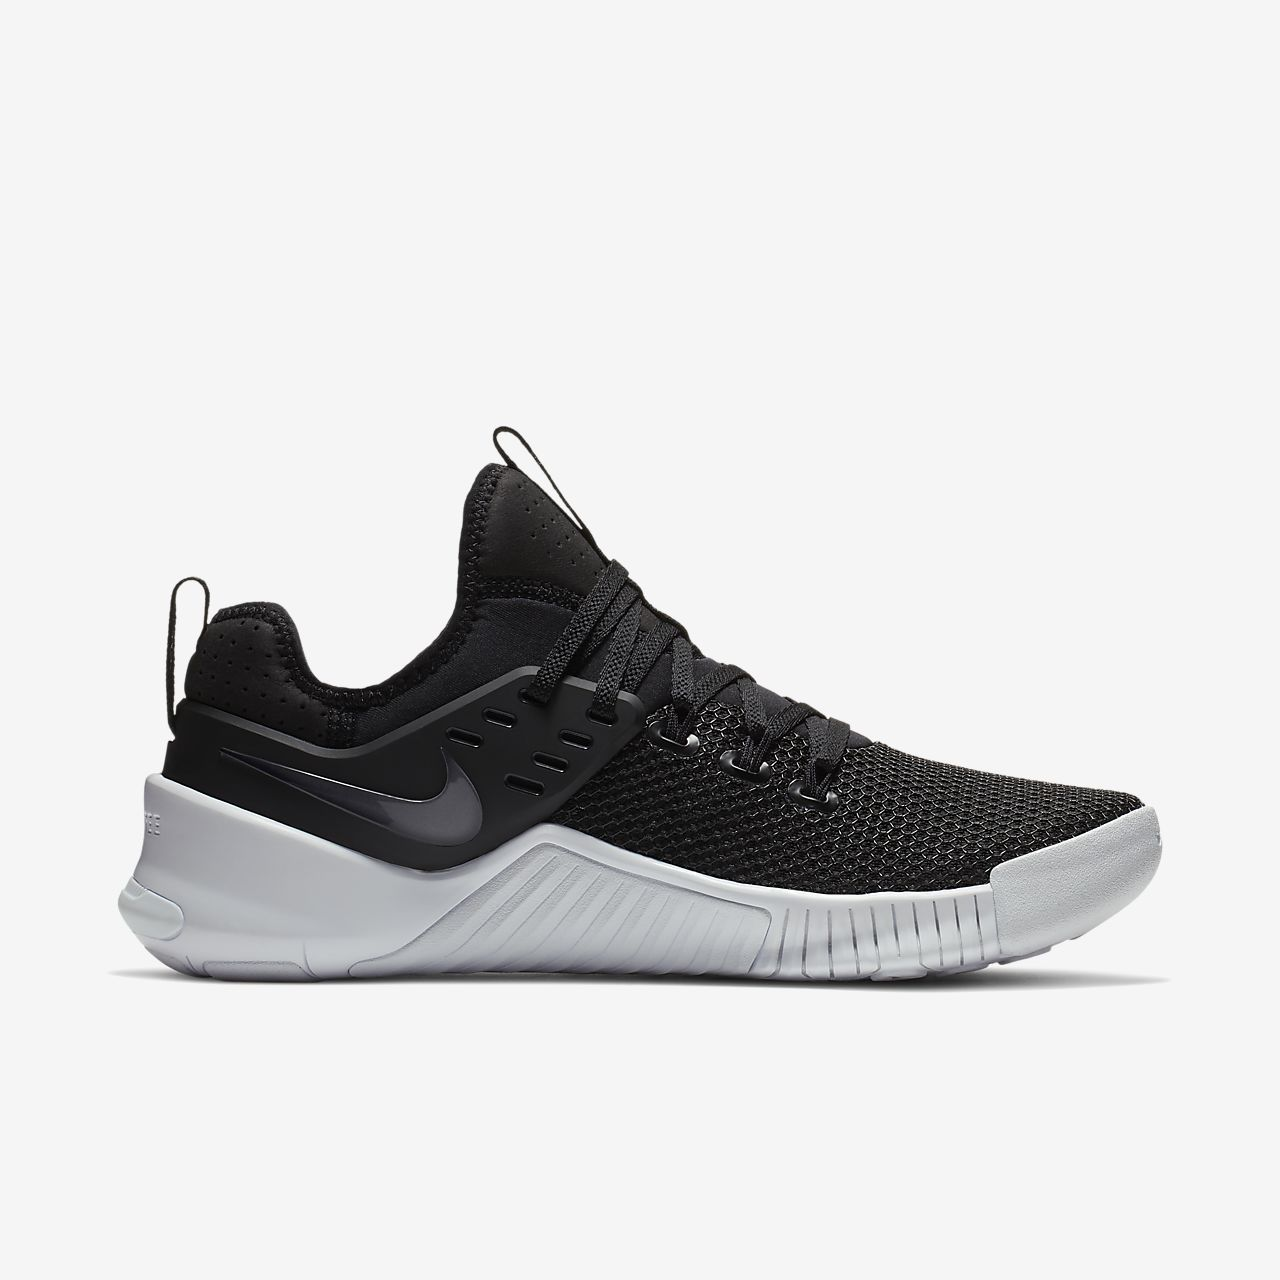 cdead05c7be7a Nike Cross Training Shoes   Buy Nike Sneakers   Shoes